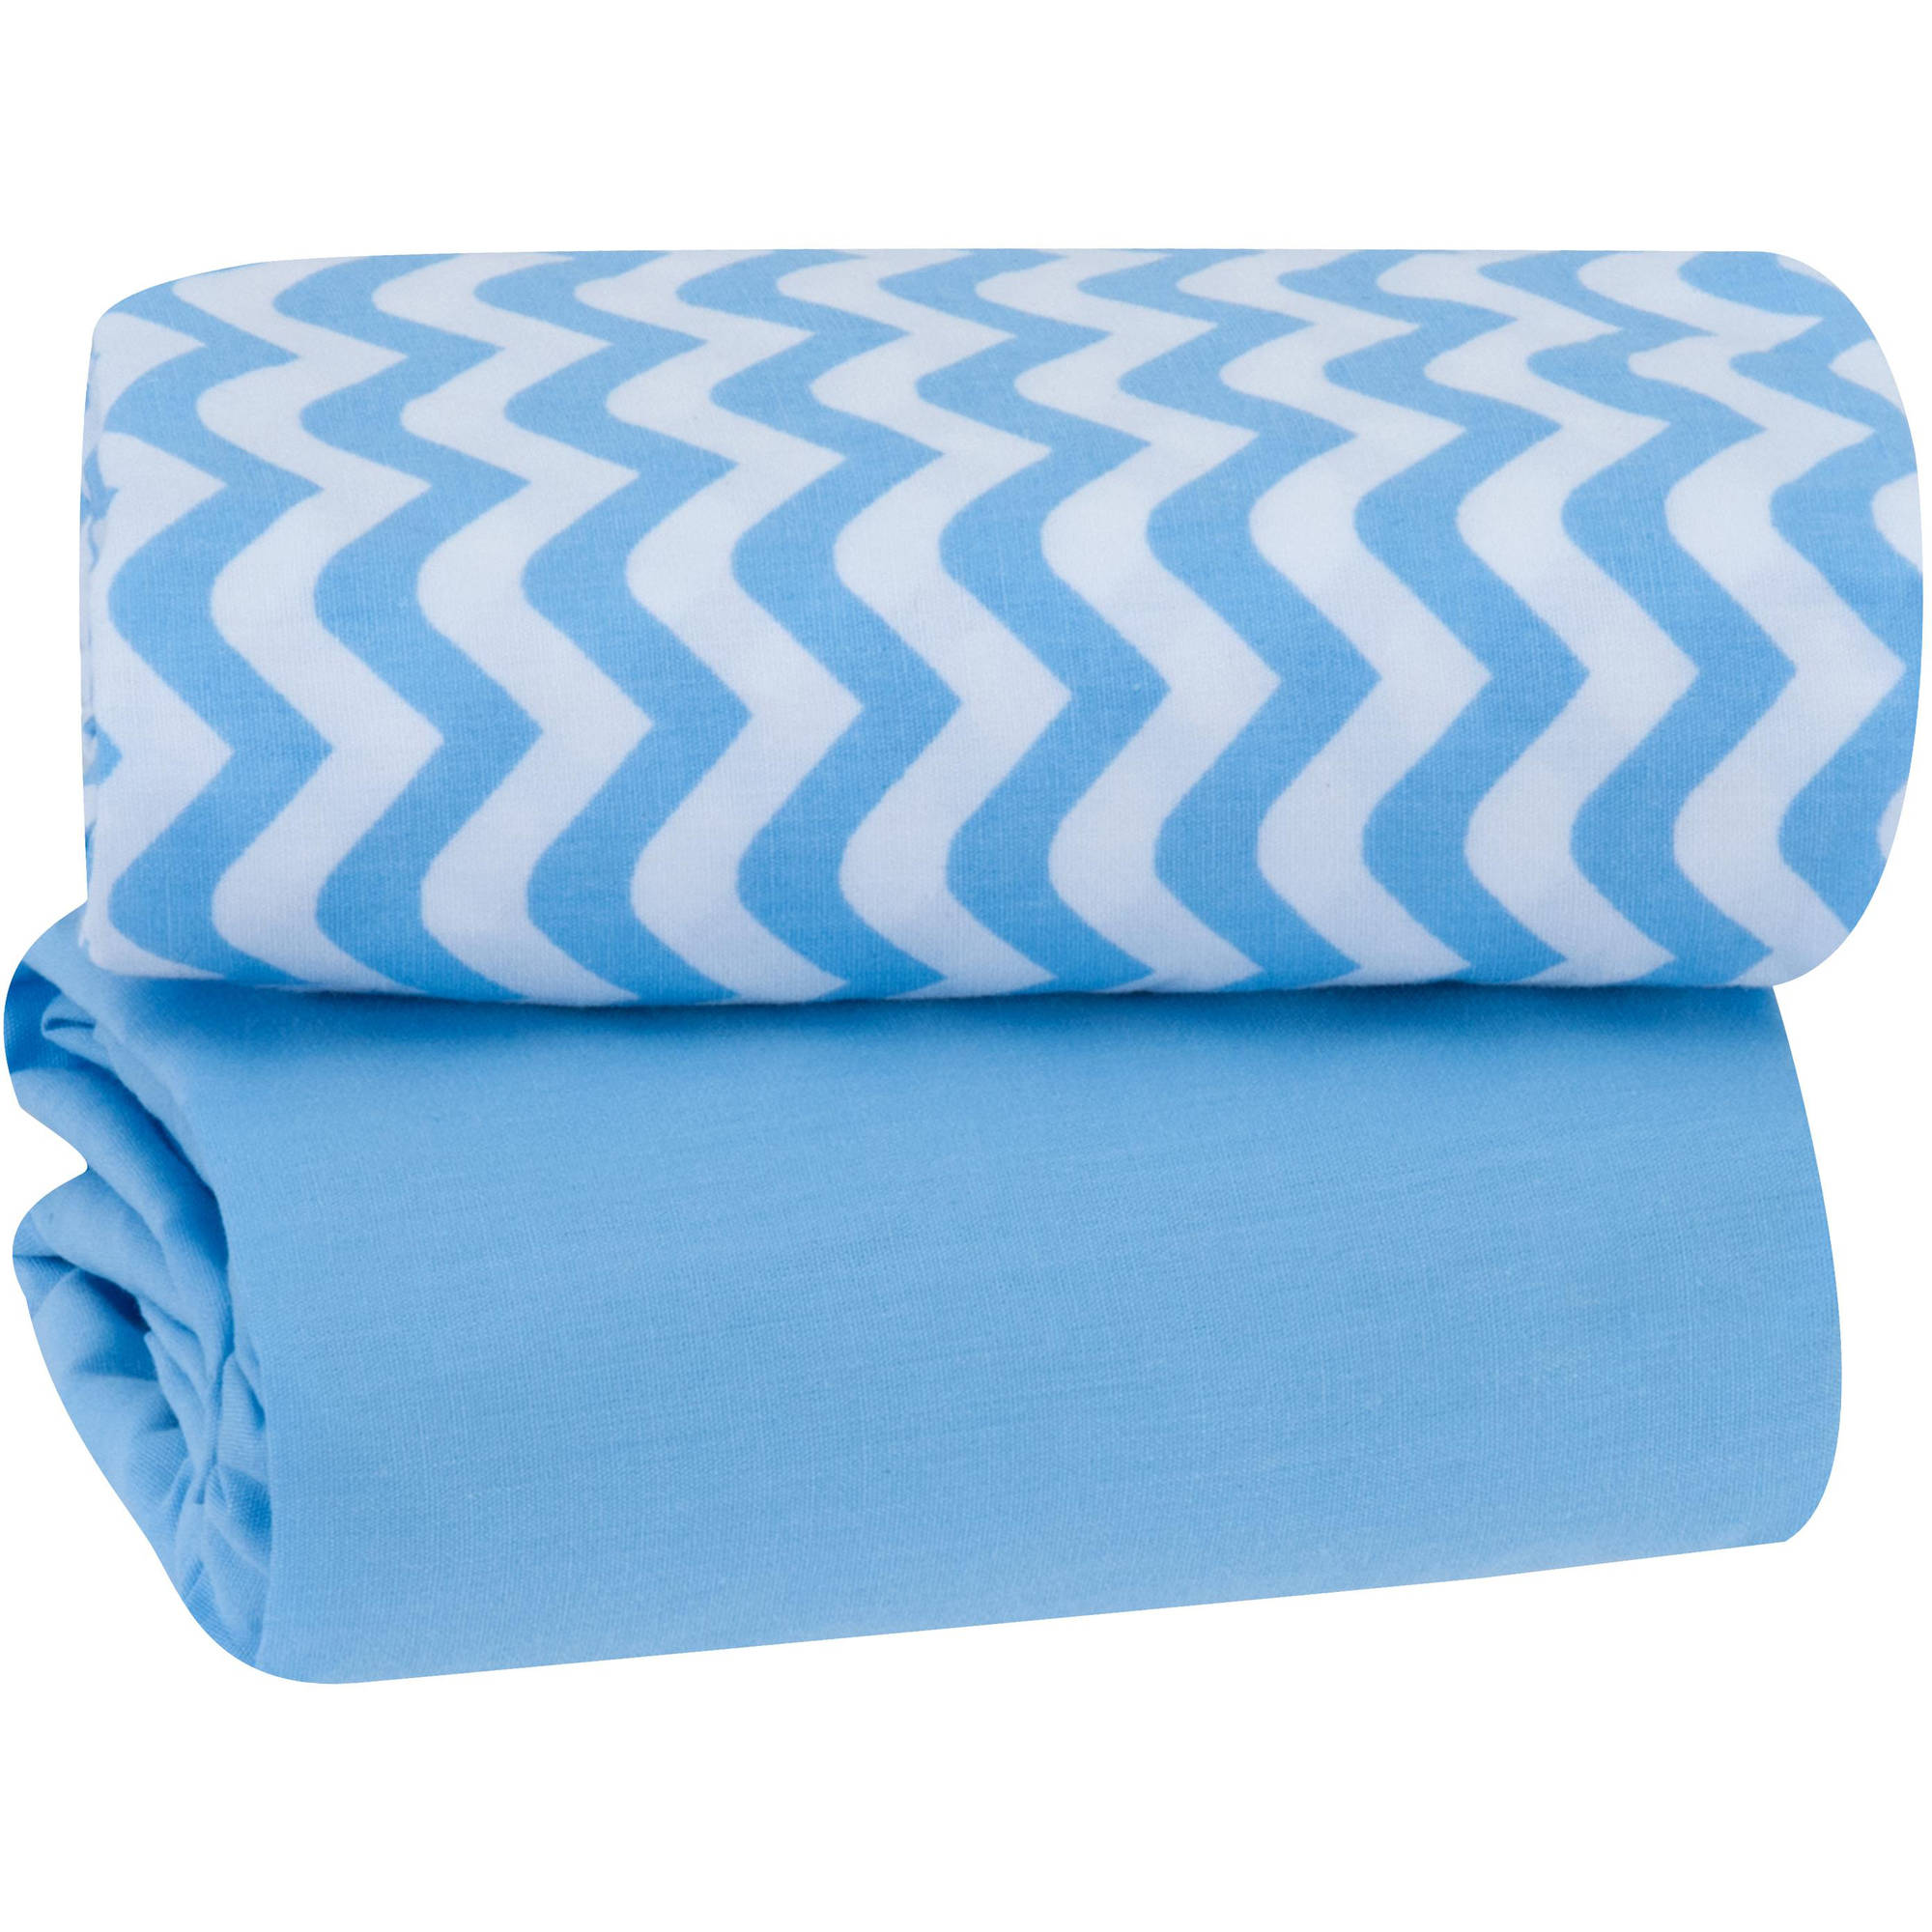 Garanimals Playard Sheet, 2pk, Blue